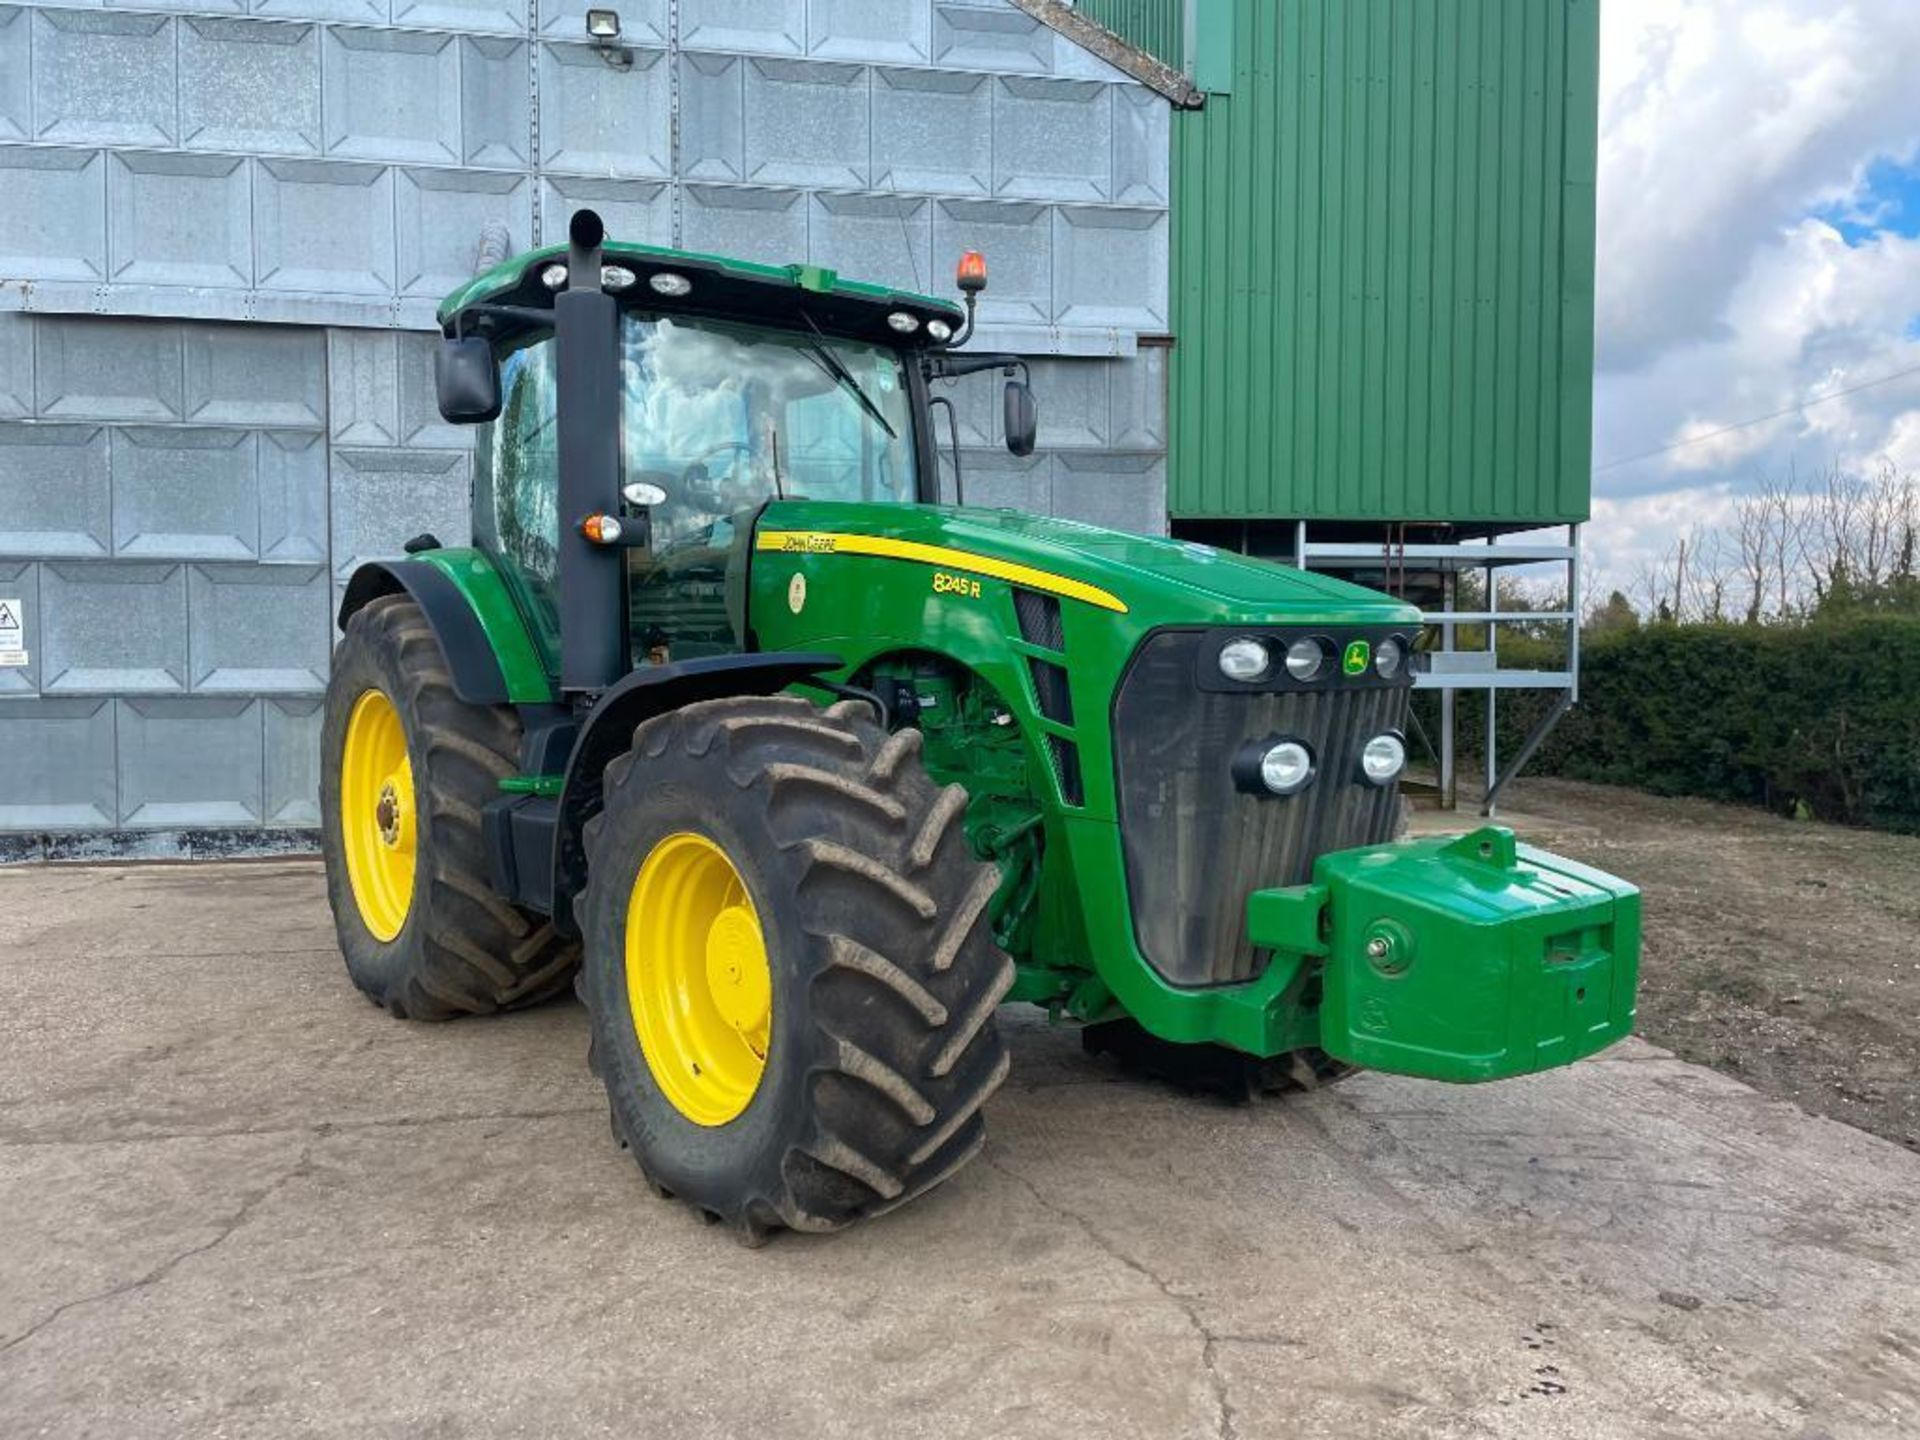 2011 John Deere 8245R 40kph Powershift with 4 electric spools, TLS front suspension and 900kg front - Image 13 of 18